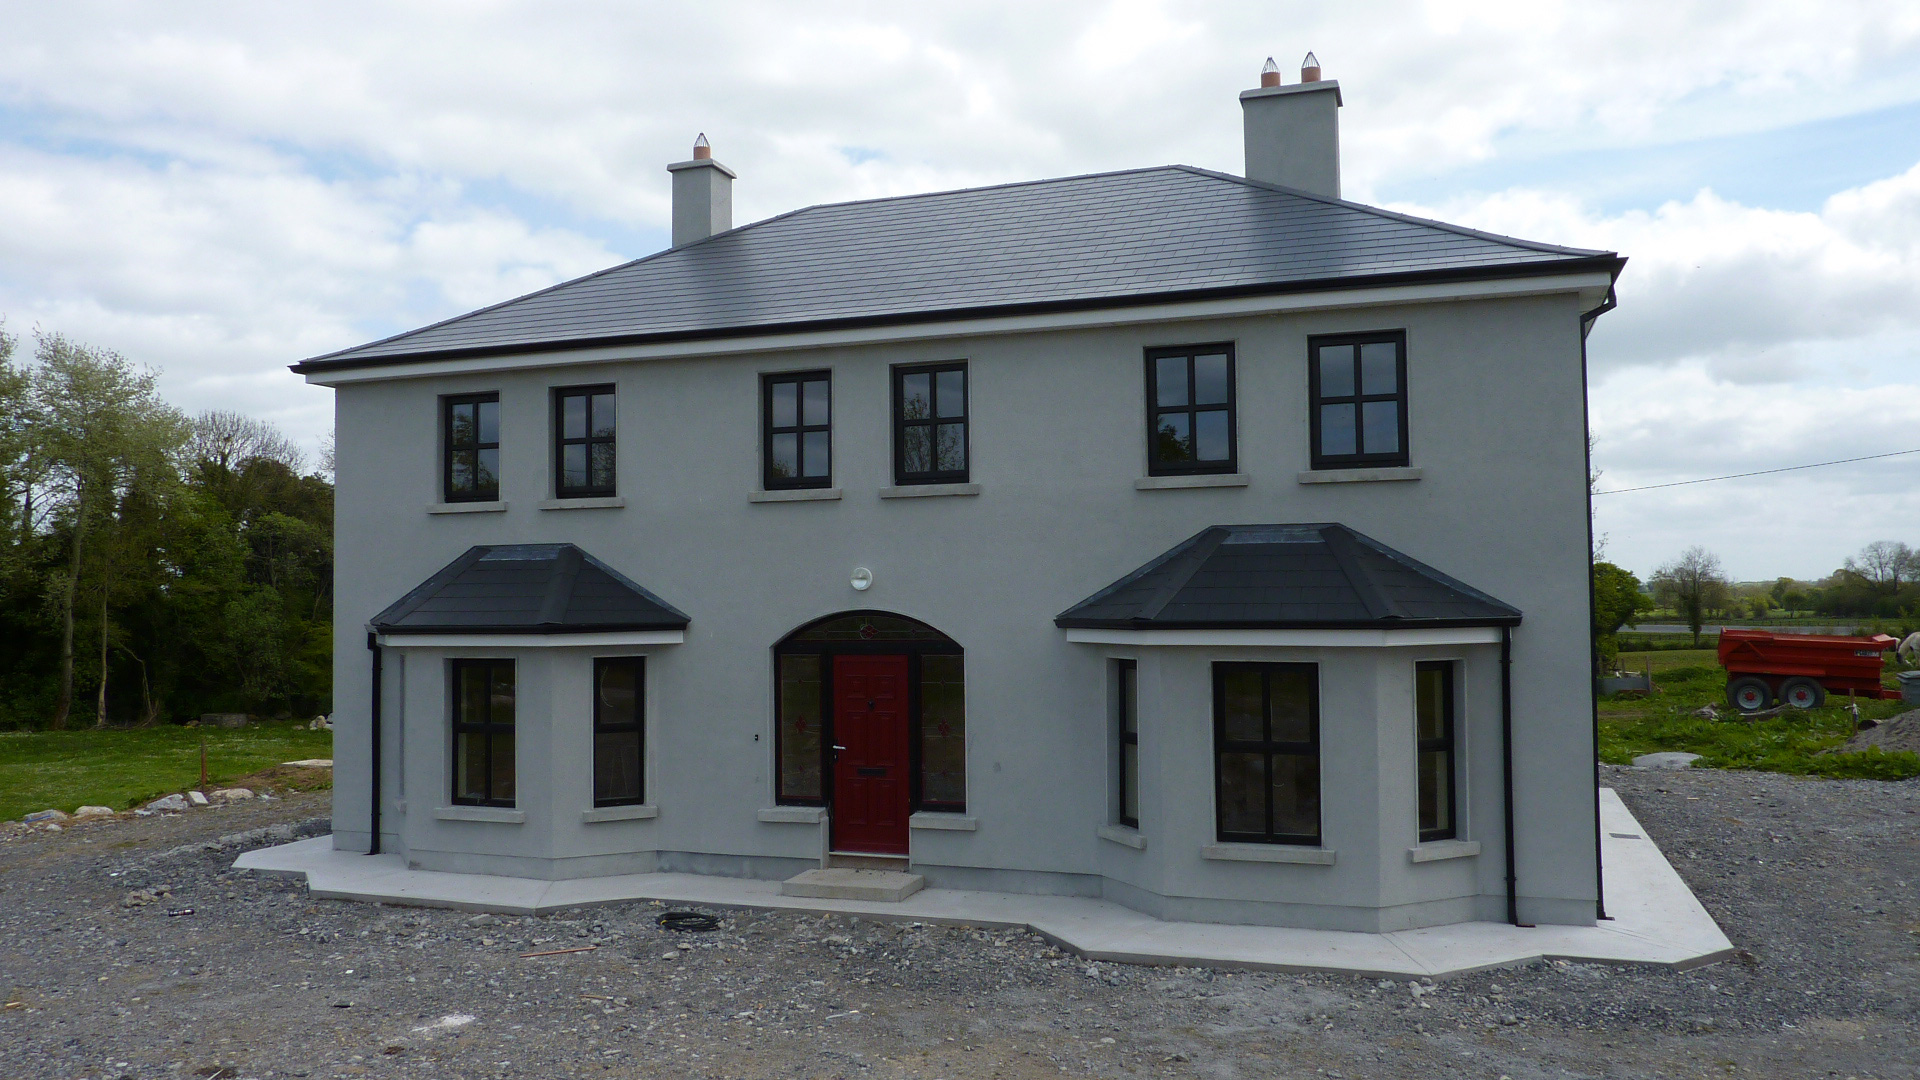 Traditional 2 story house plans ireland for Traditional 2 story house